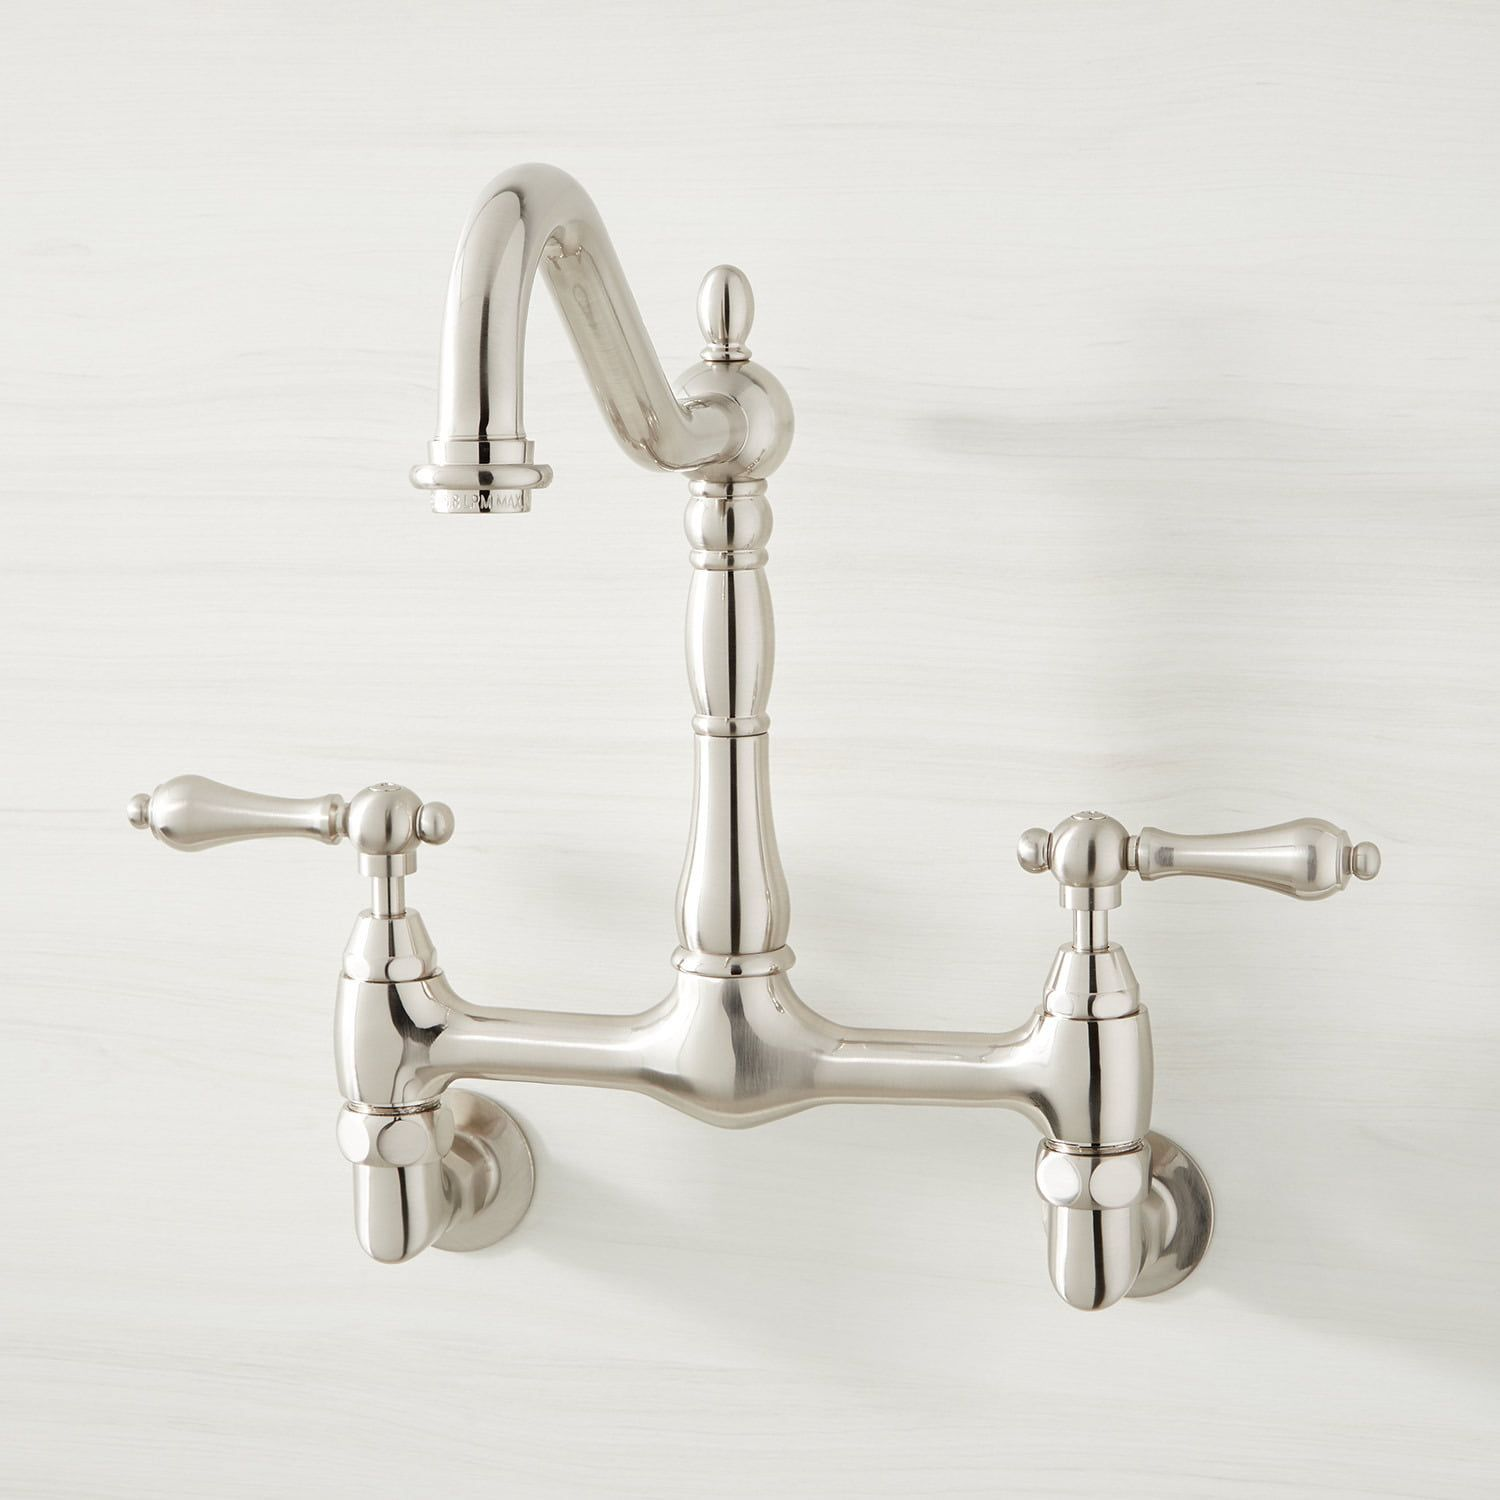 Felicity Wall Mount Kitchen Faucet Wall Mount Kitchen Faucet Kitchen Faucet Bidet Faucets